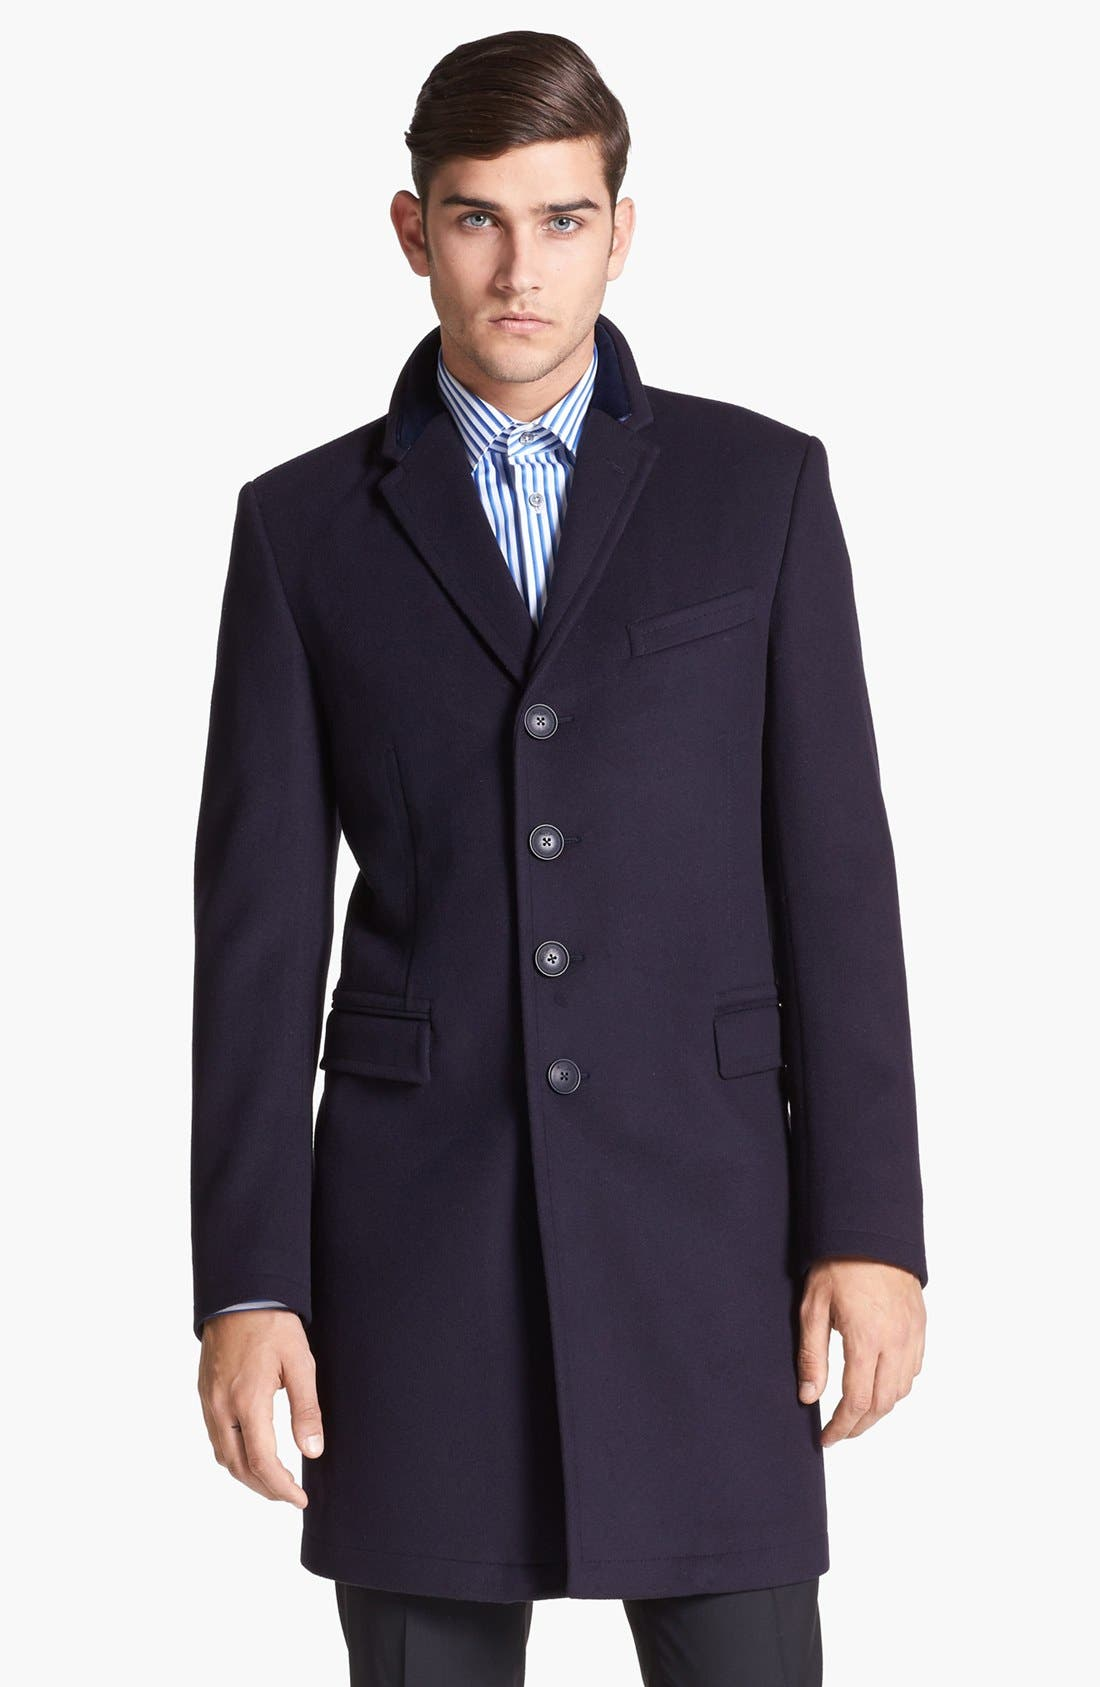 Alternate Image 1 Selected - Paul Smith London Tailored Wool Topcoat